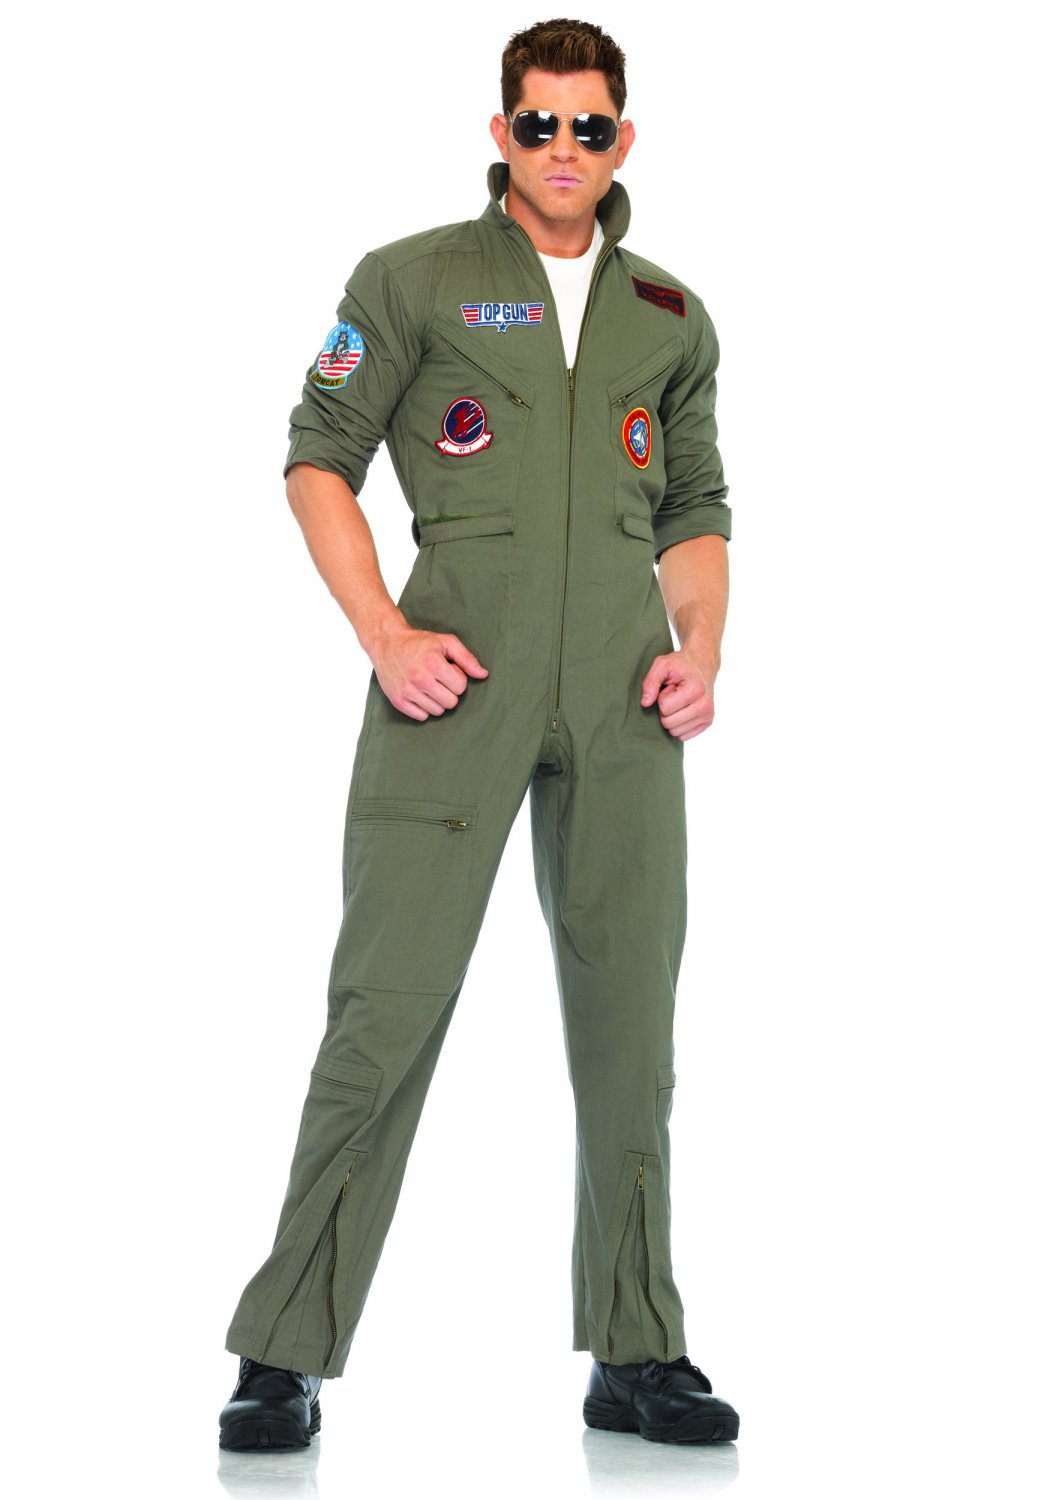 Leg Avenue Top Gun Flight Suit Size 3X